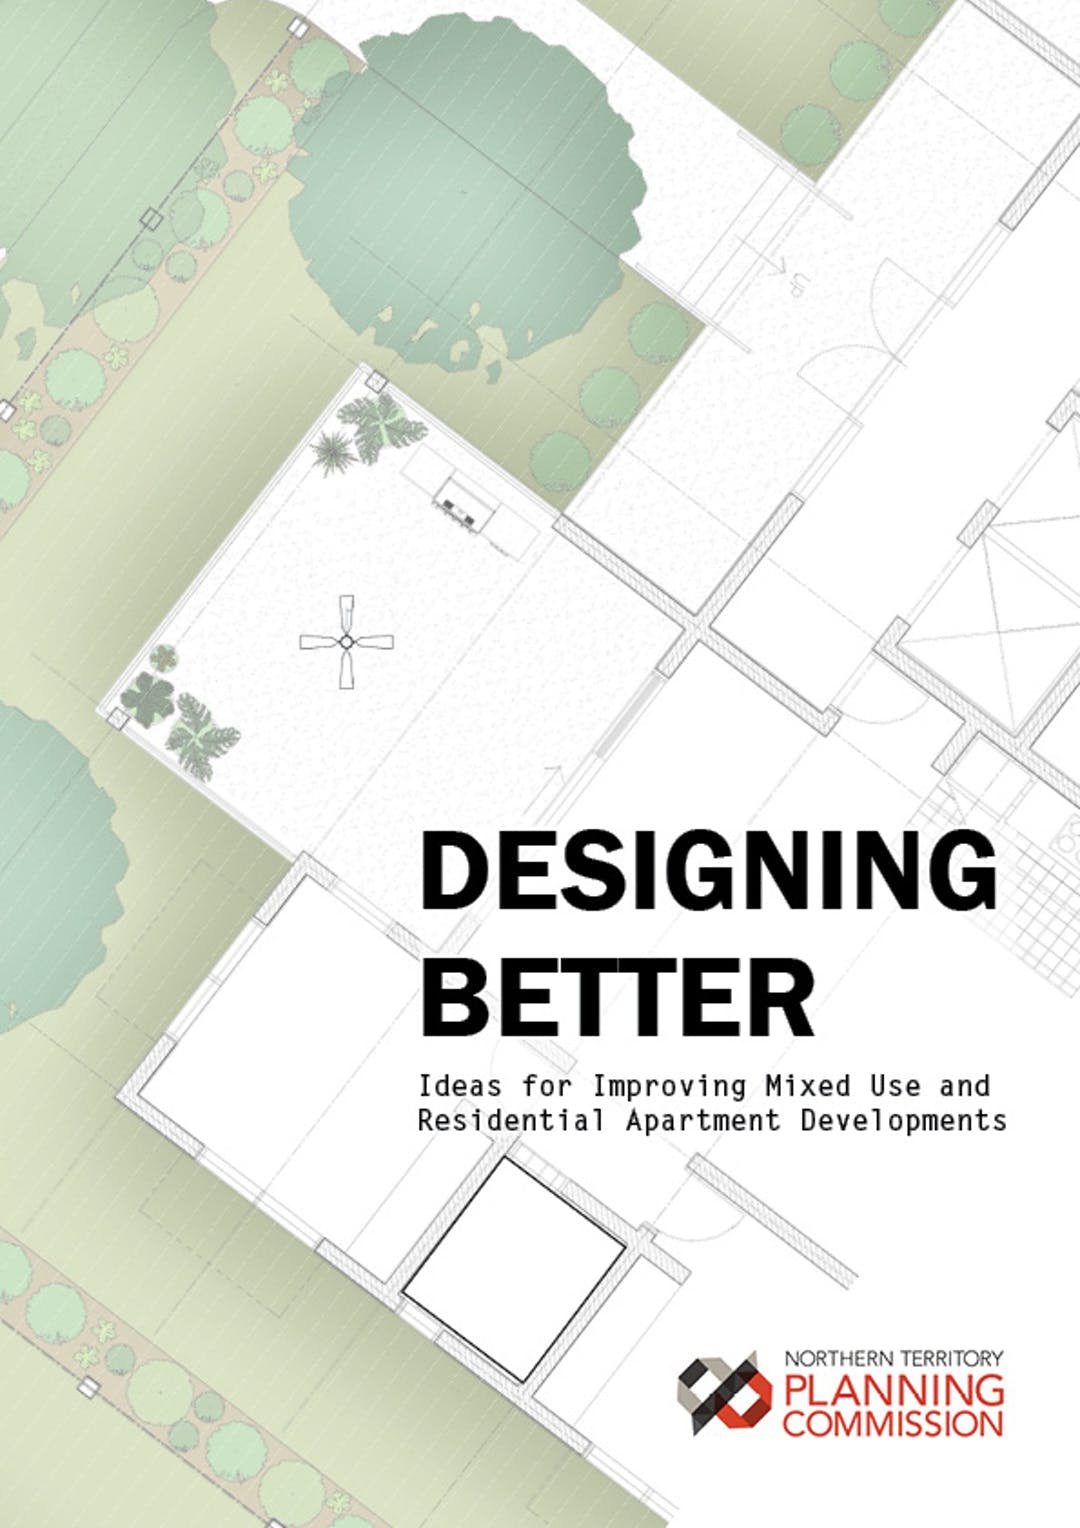 Designing better cover mjw v4